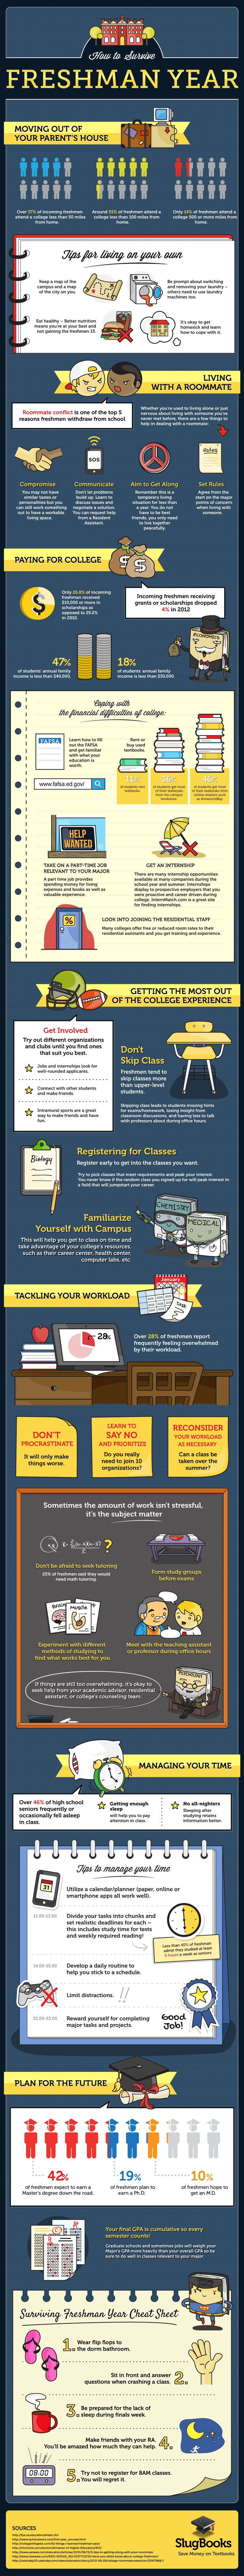 No matter how excited you are about starting your freshman year of college, you're bound to experience some nerves as well.  For tips on how to survive your first year of college, check out the following infographic: